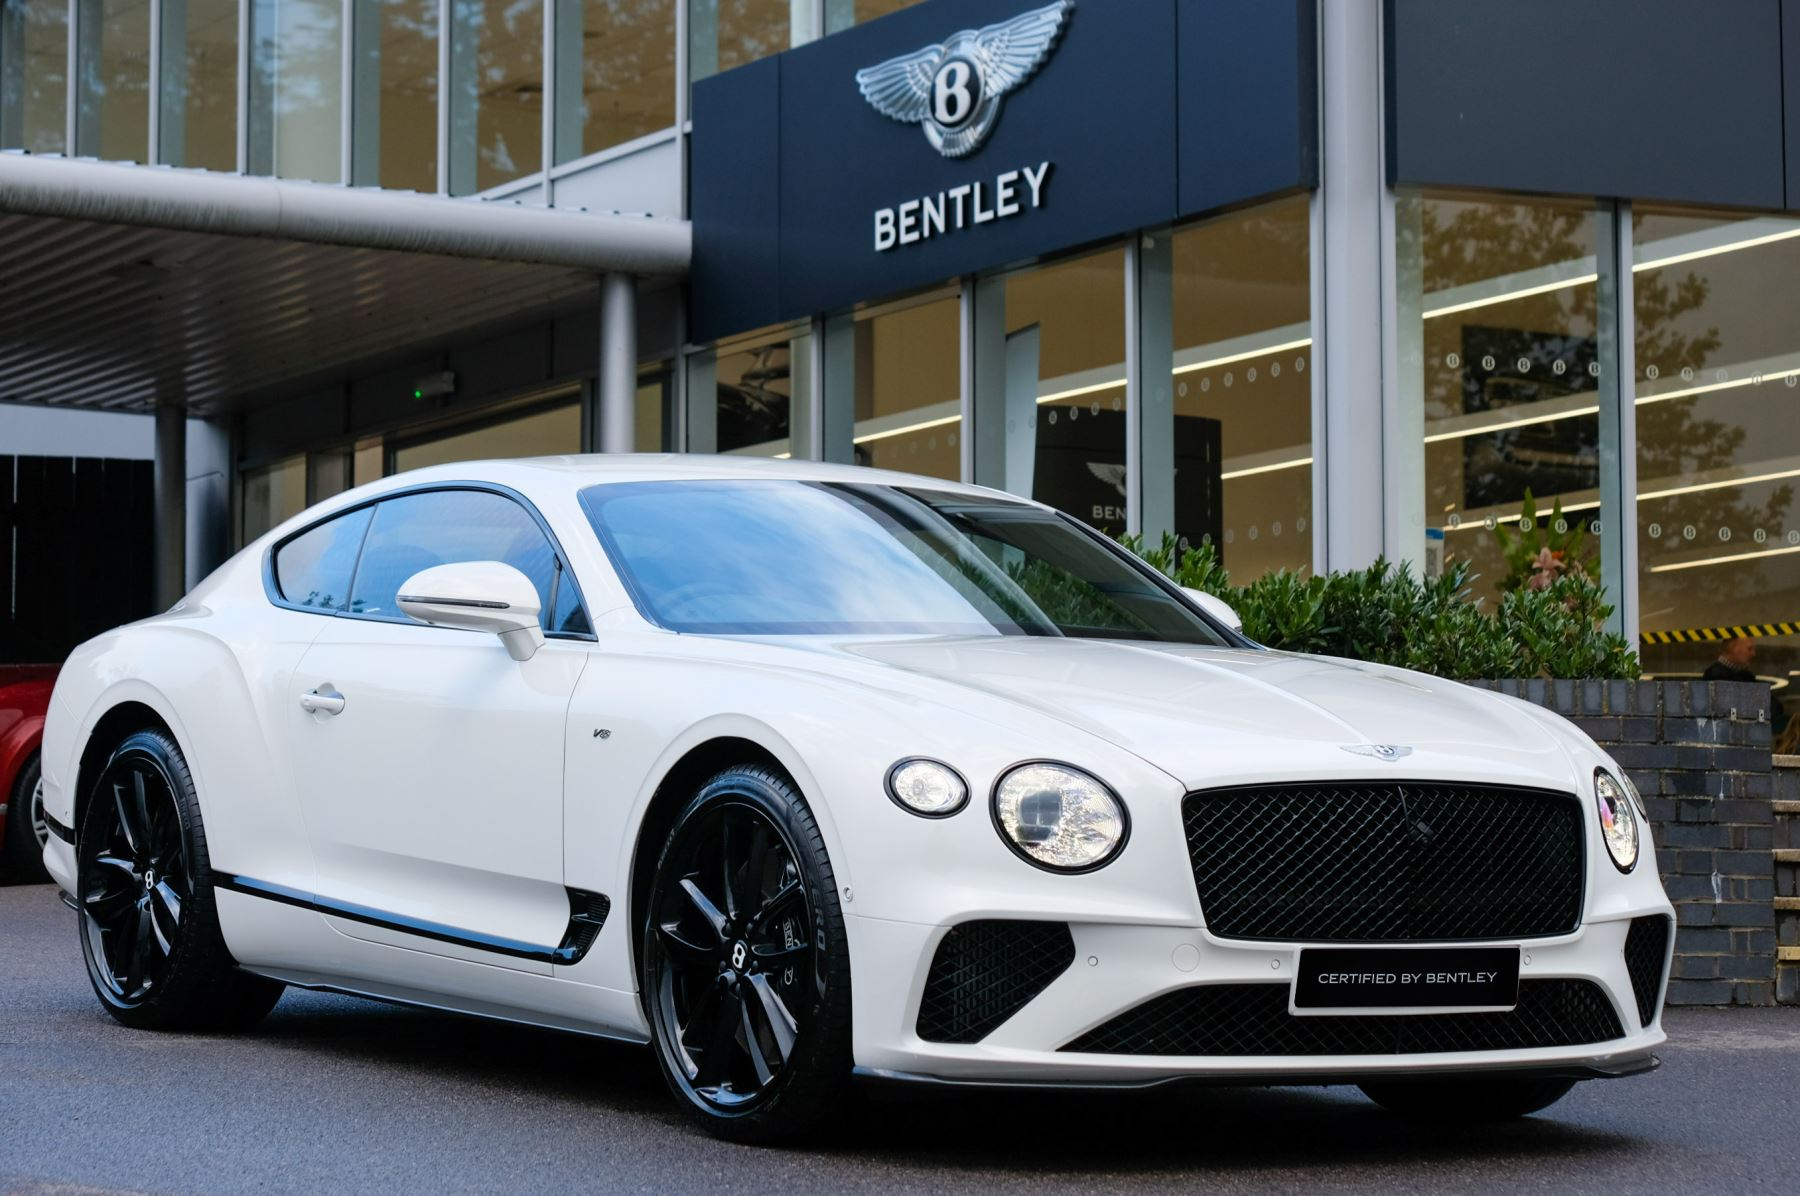 Bentley Continental GT 4.0 V8 - Mulliner Driving Specification & Exterior Carbon Styling Kit Automatic 2 door Coupe